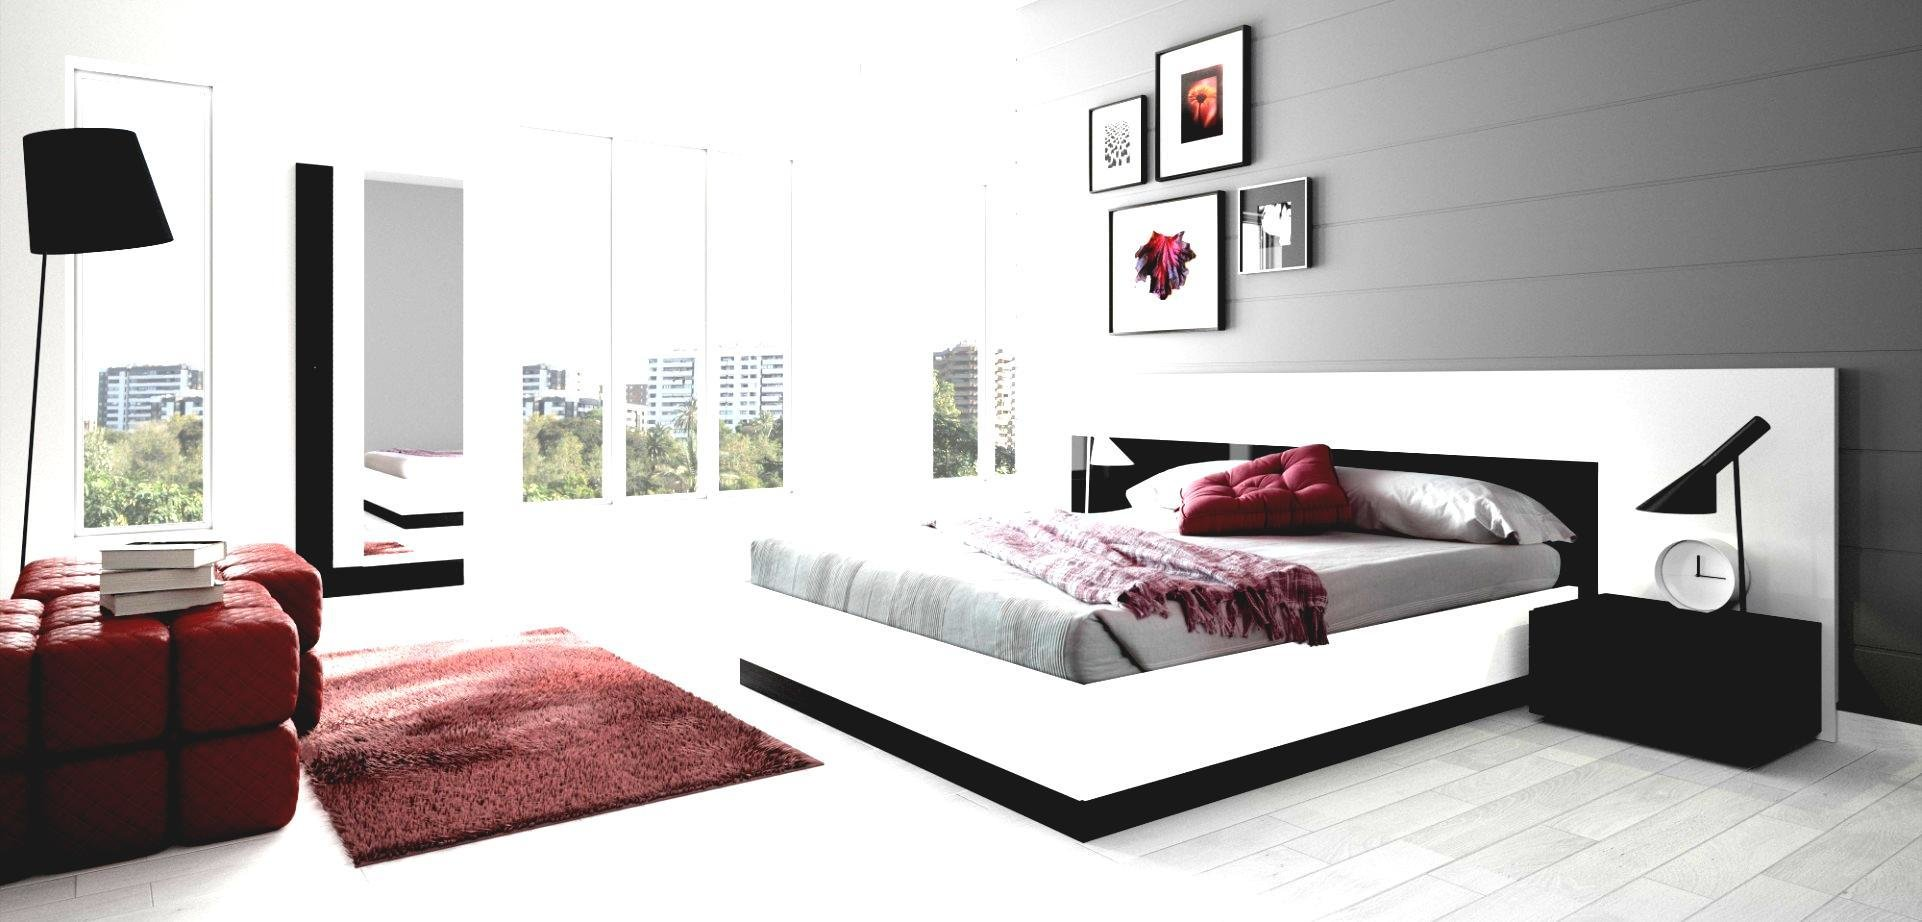 Best Offer For Inexpensive Bedroom Furniture Sale Goodhomez Com With Pictures